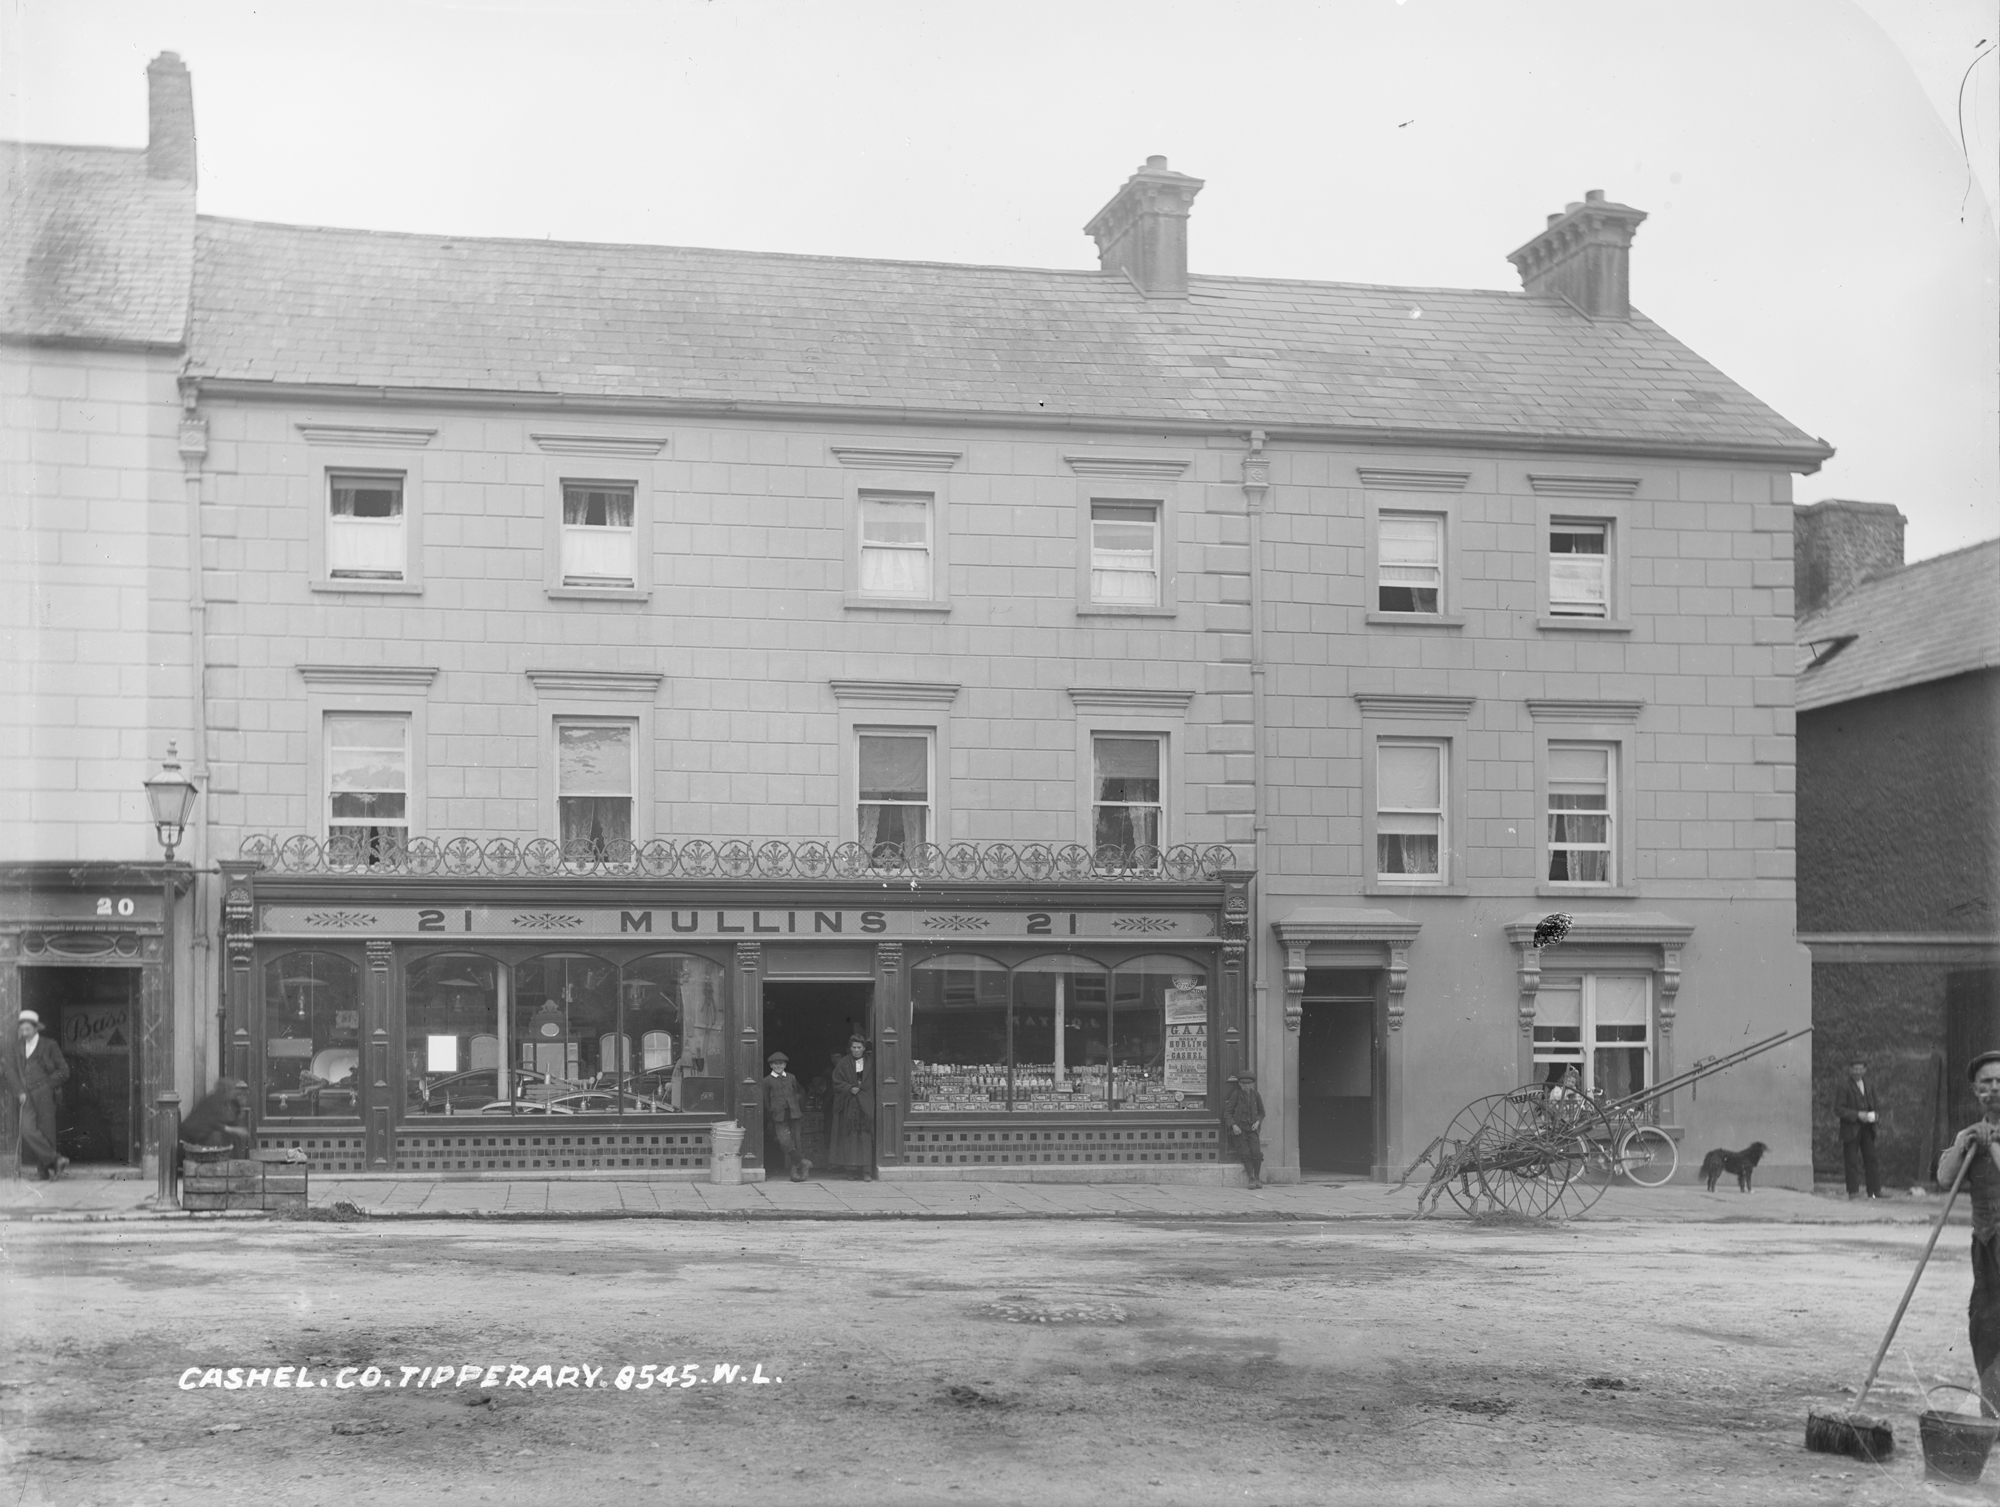 Mullins, Cashel Co.Tipperary